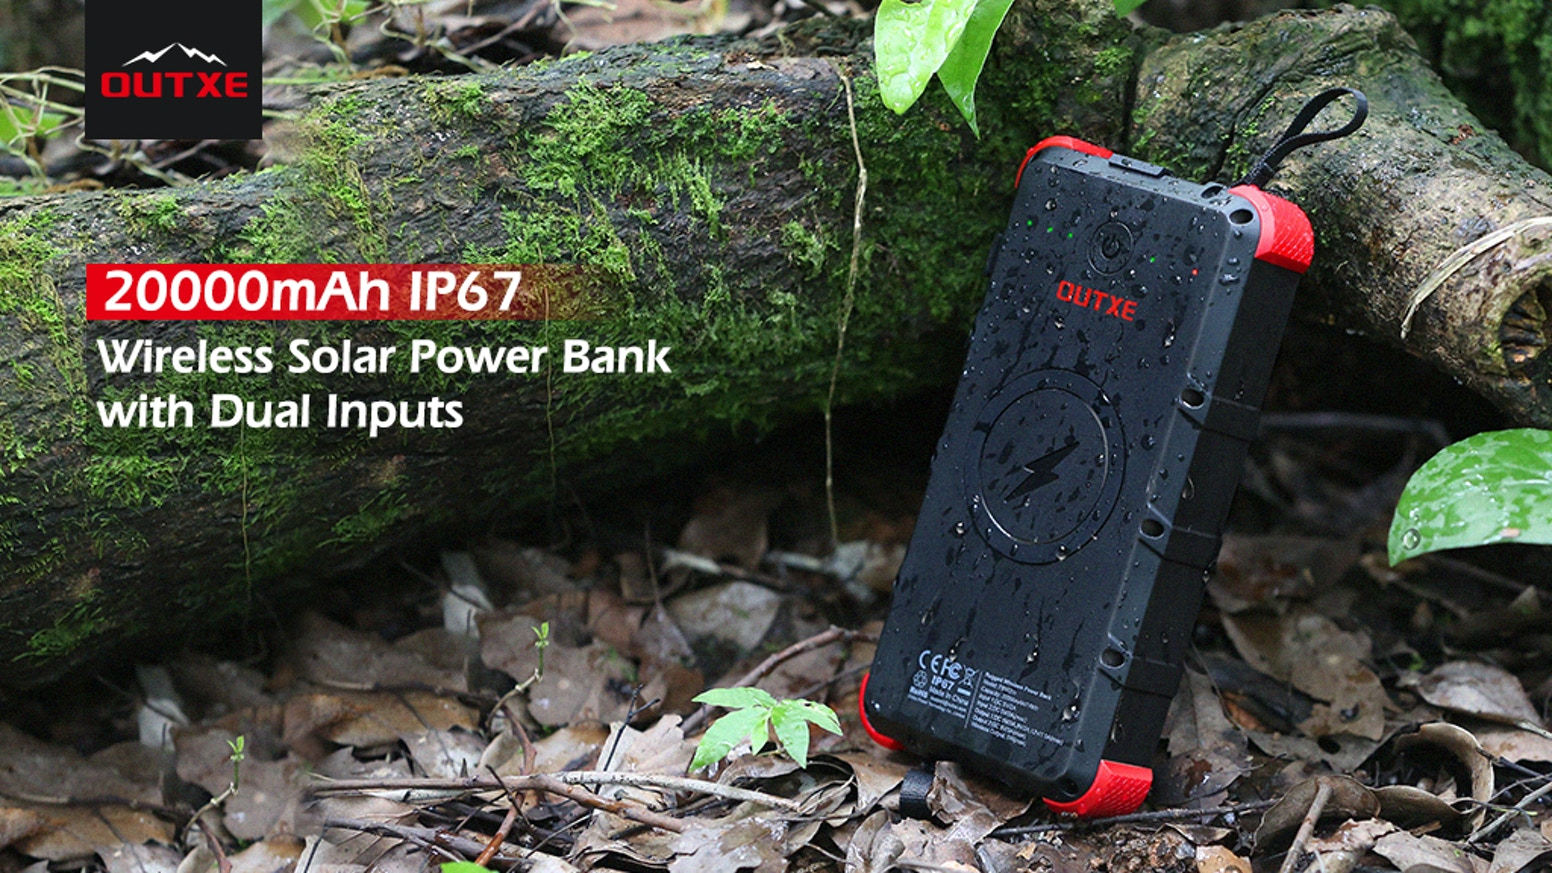 IP67 Waterproof & Dustproof & Rugged| Wireless Charging | Solar Power Supply | 20000mAh | Smart Quick Charge Output | 6.5 hours Full Recharge